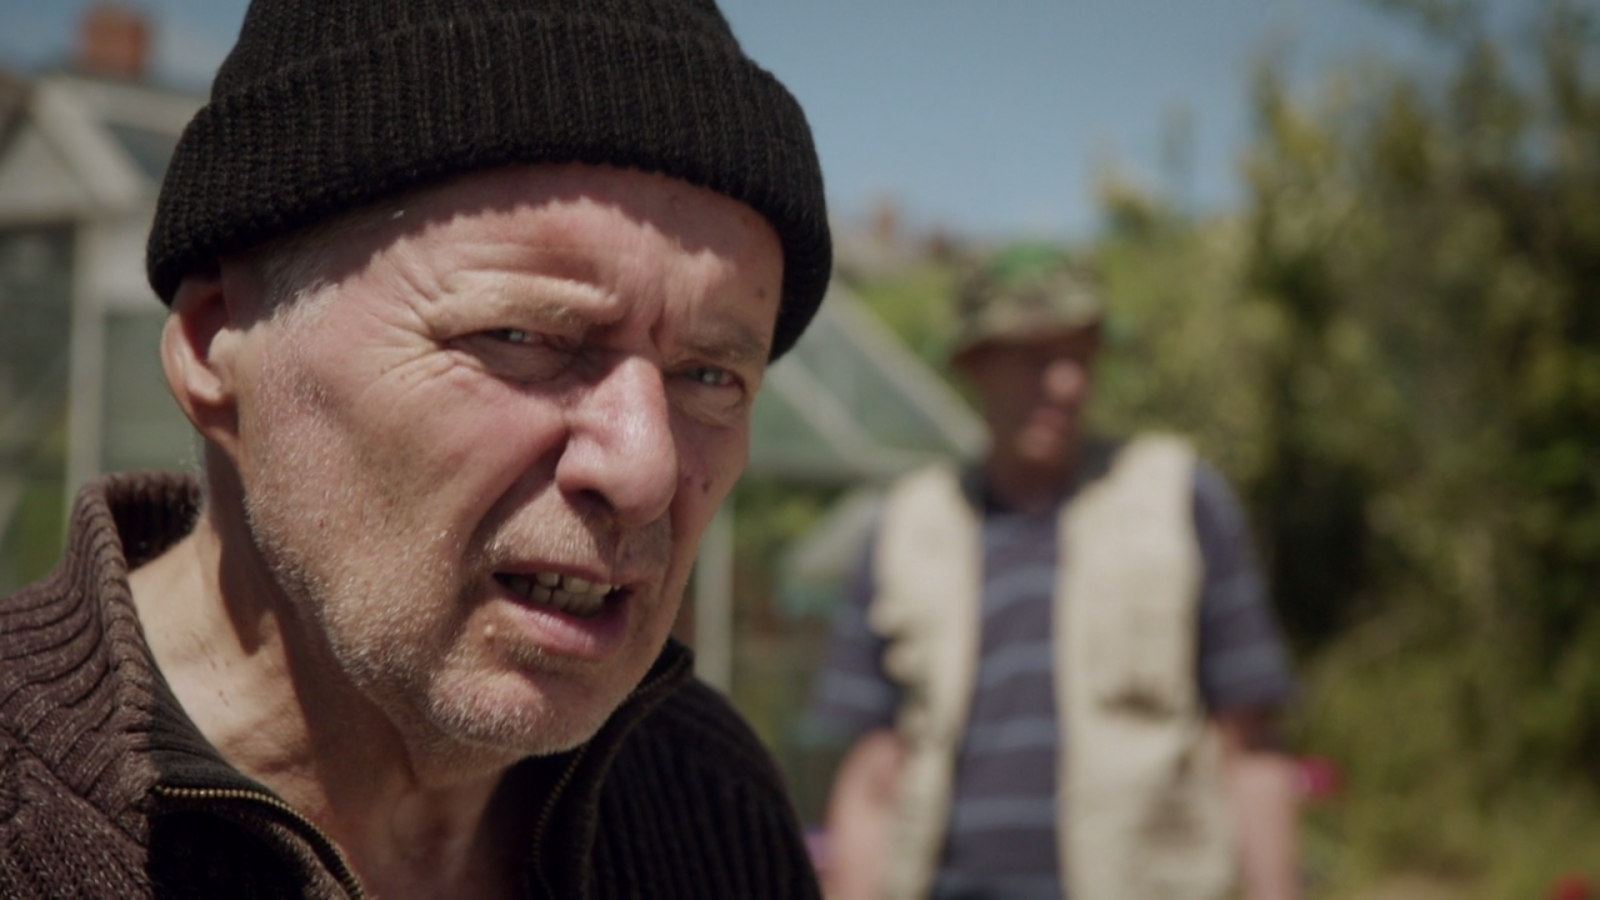 Longish: Vera Series 5 - Old Wounds - Episode Review